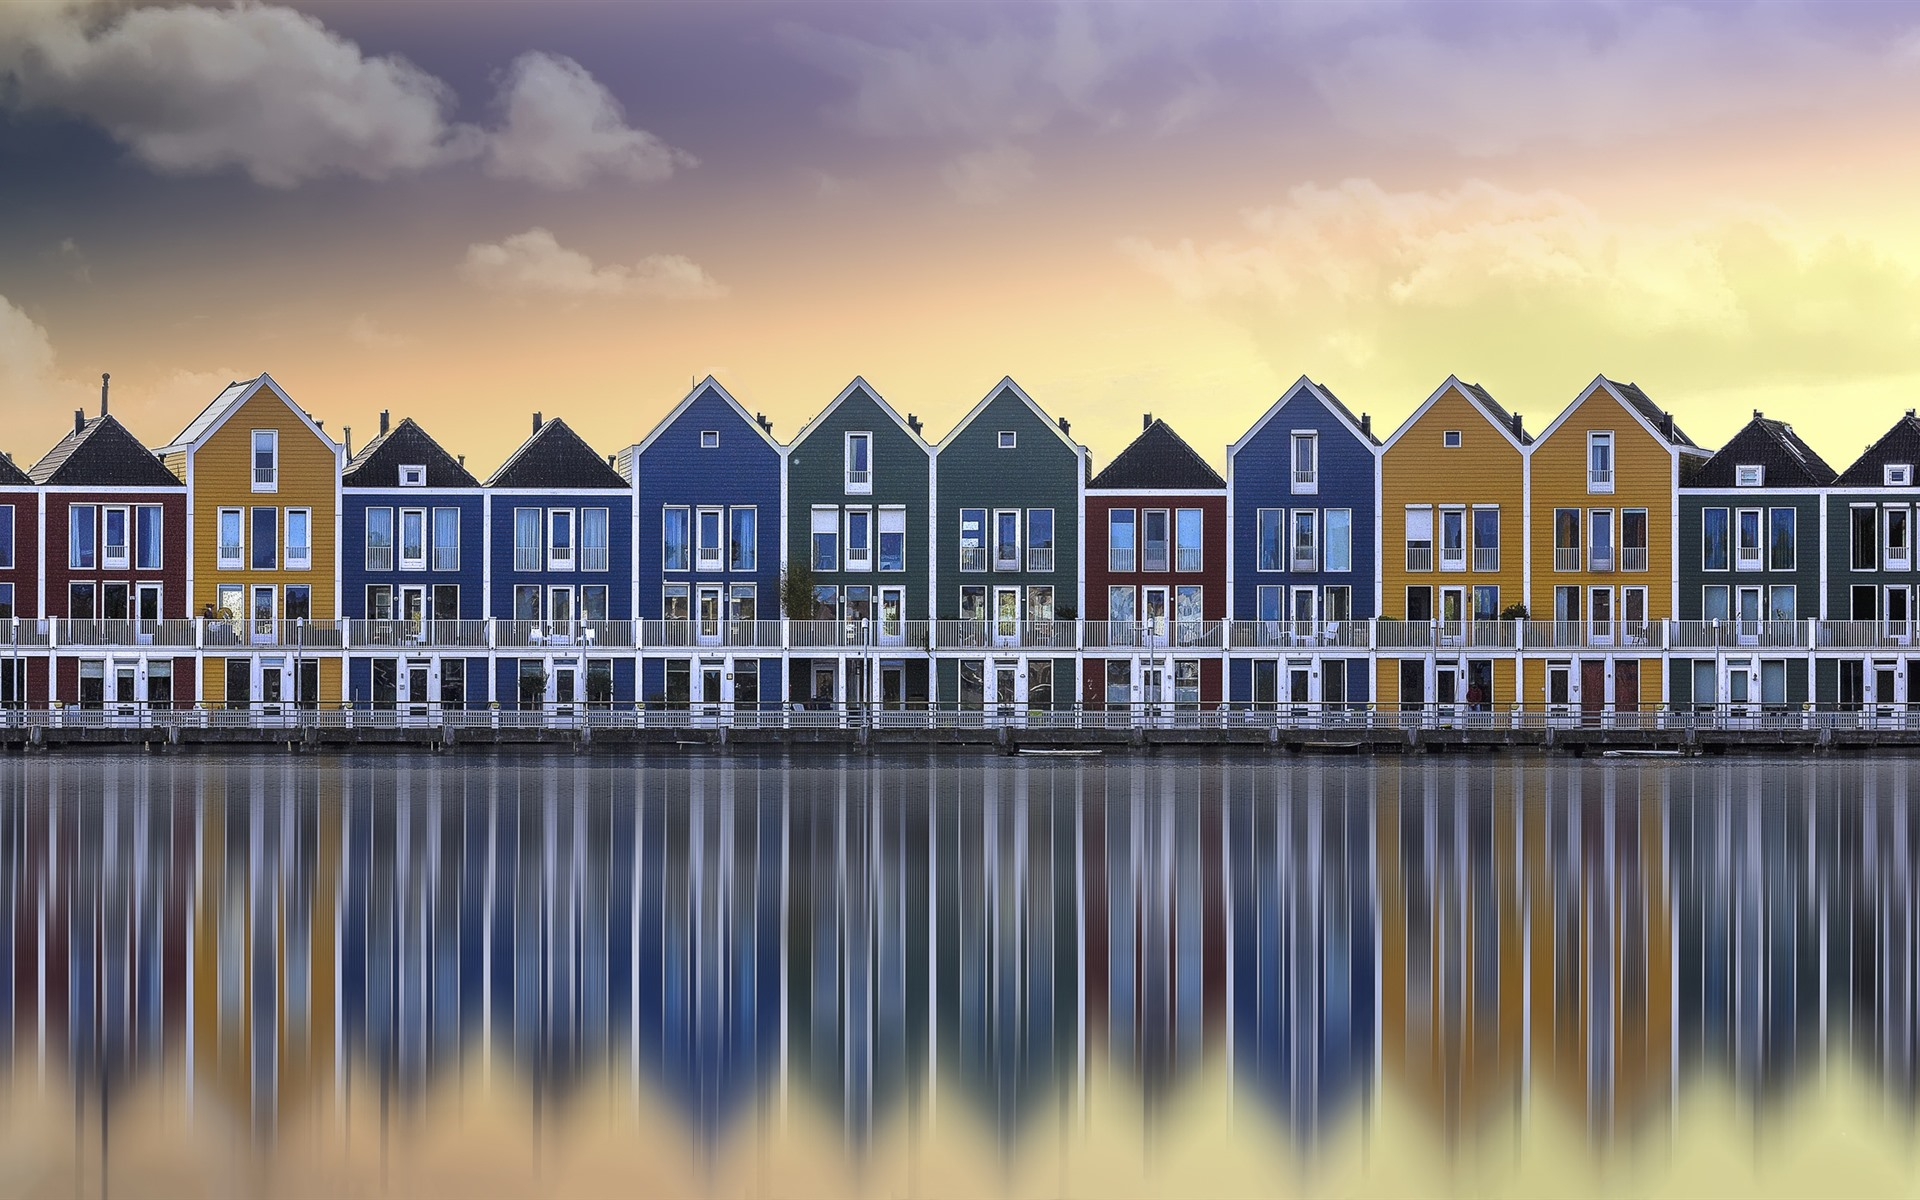 river houses colors water reflection